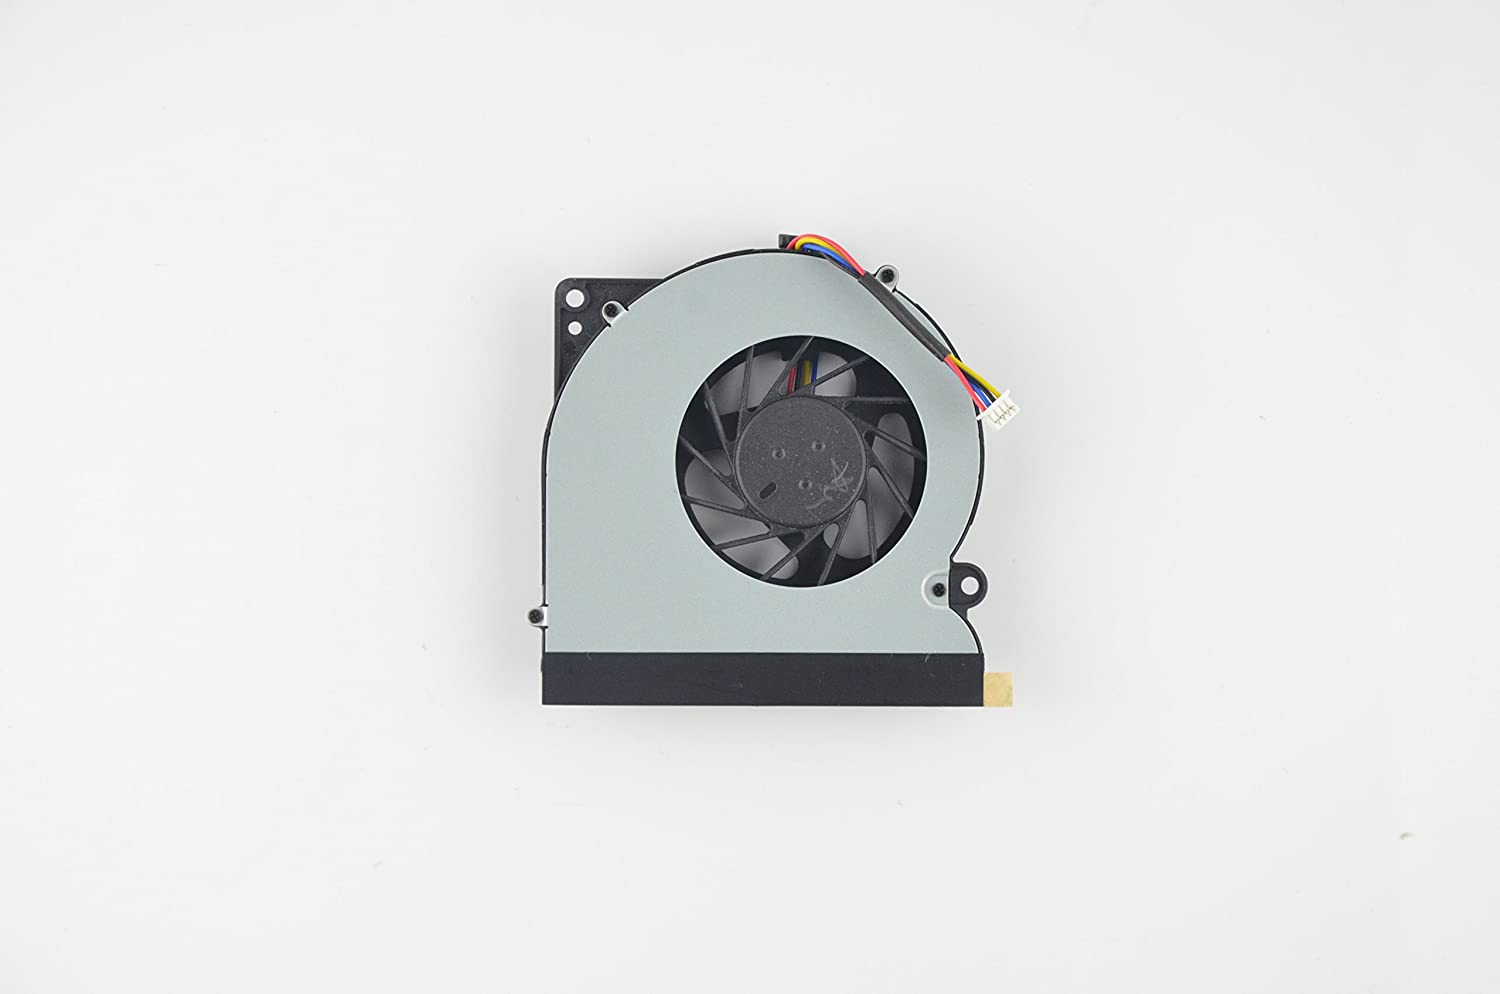 Eathtek Replacement CPU Cooling Fan for ASUS N61 N61Da N61Ja N61Jq N61Jv N61Vf N61Vg N61Vn N61V N61JV N61JQ N61VG A52 K72 KSB06105HB UDQFLZH24DAS 9J73 9F02 0X24F7R Series